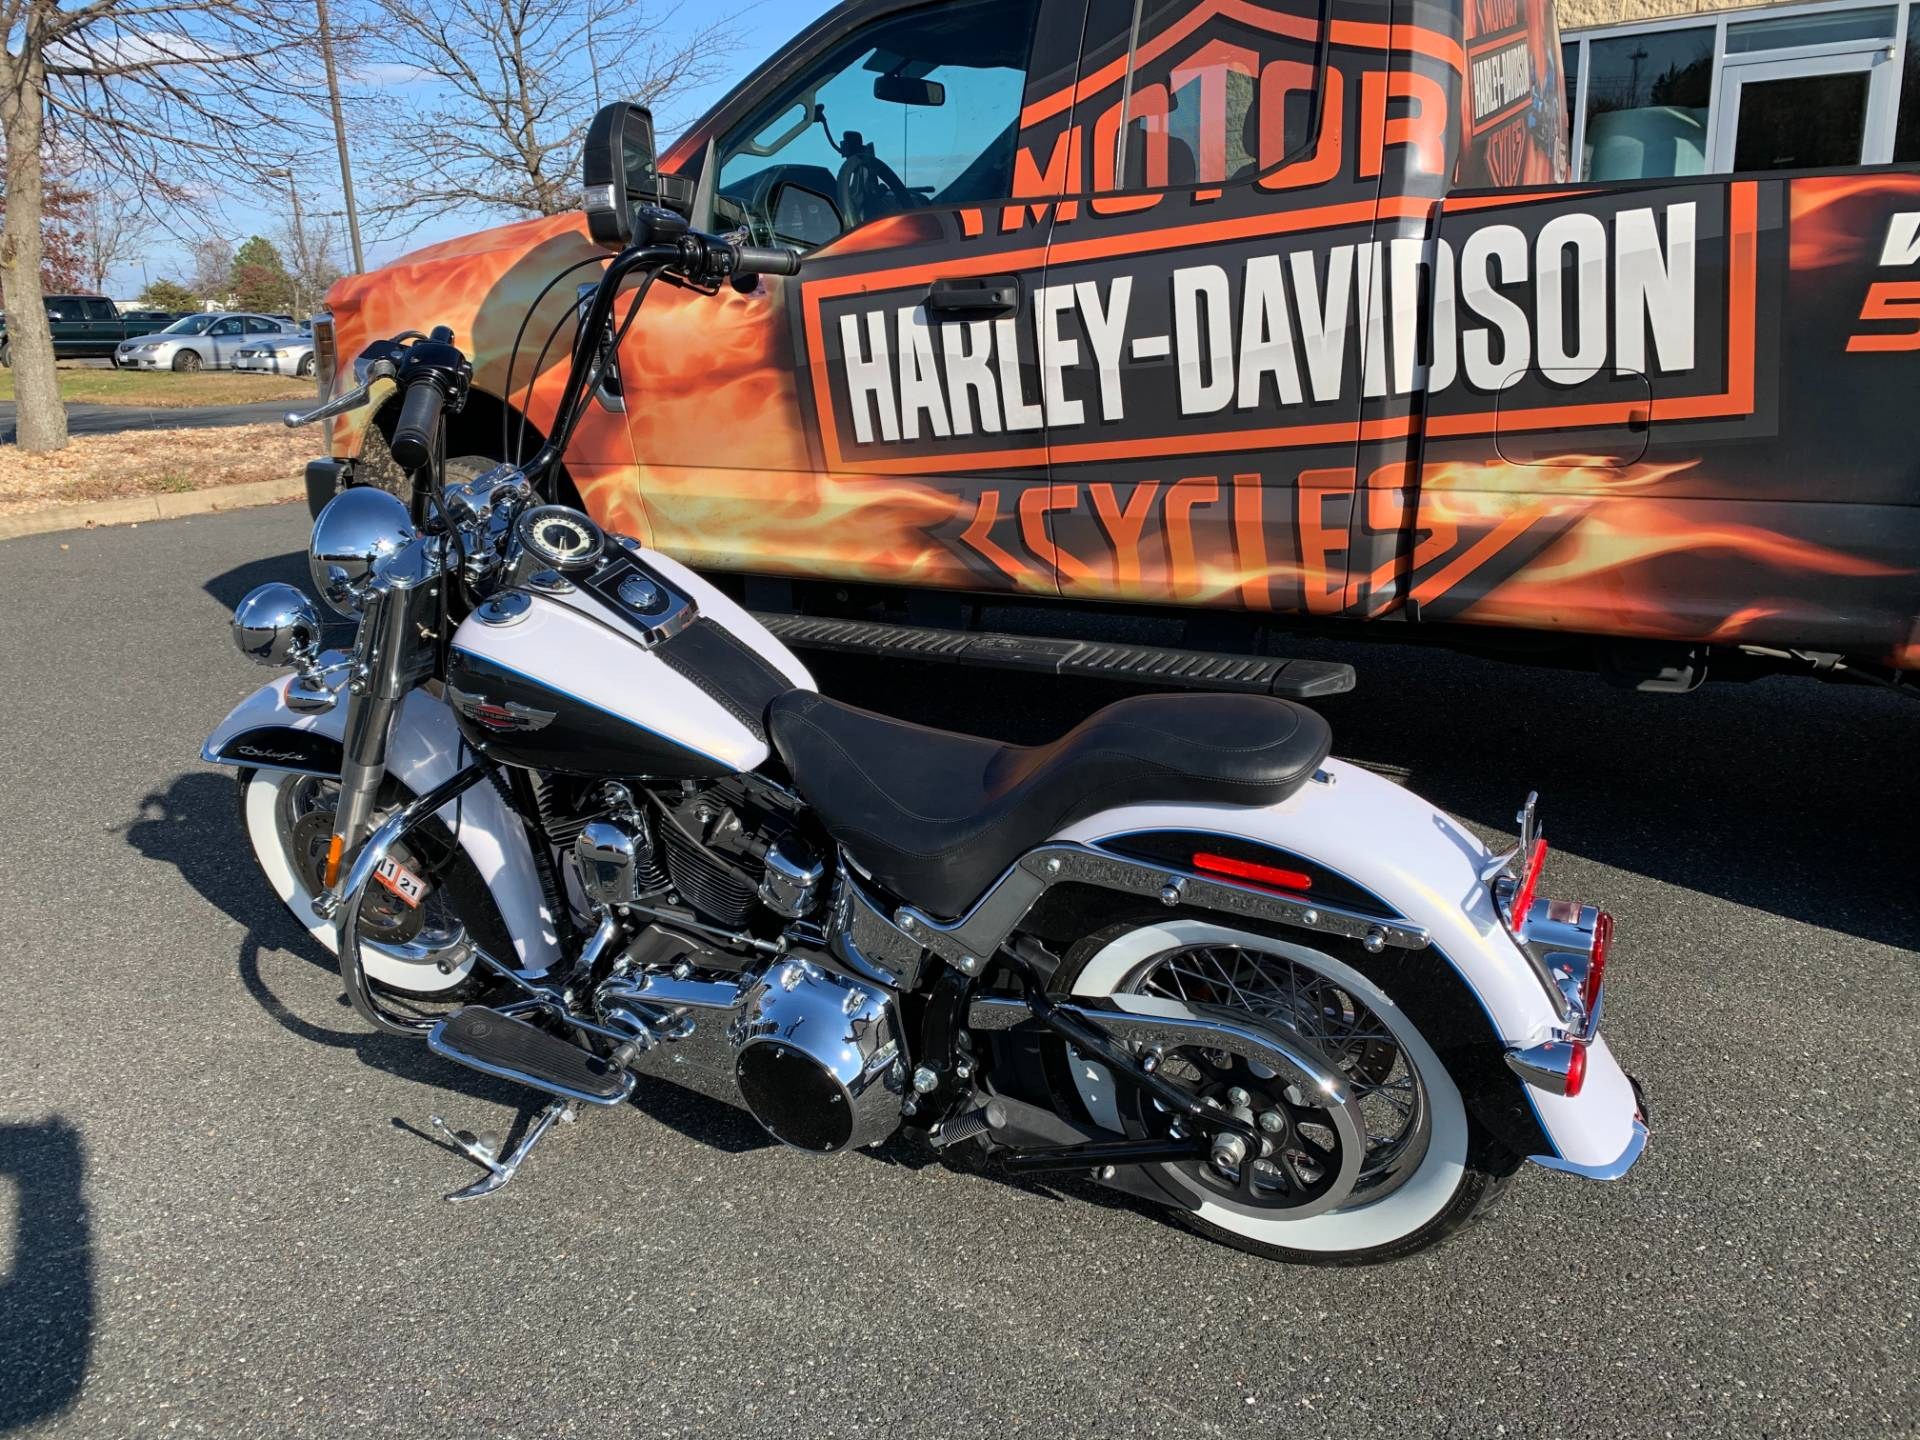 Used 2008 Harley Davidson Softail Deluxe White Gold Pearl Black Pearl Motorcycles In Dumfries Va 018251